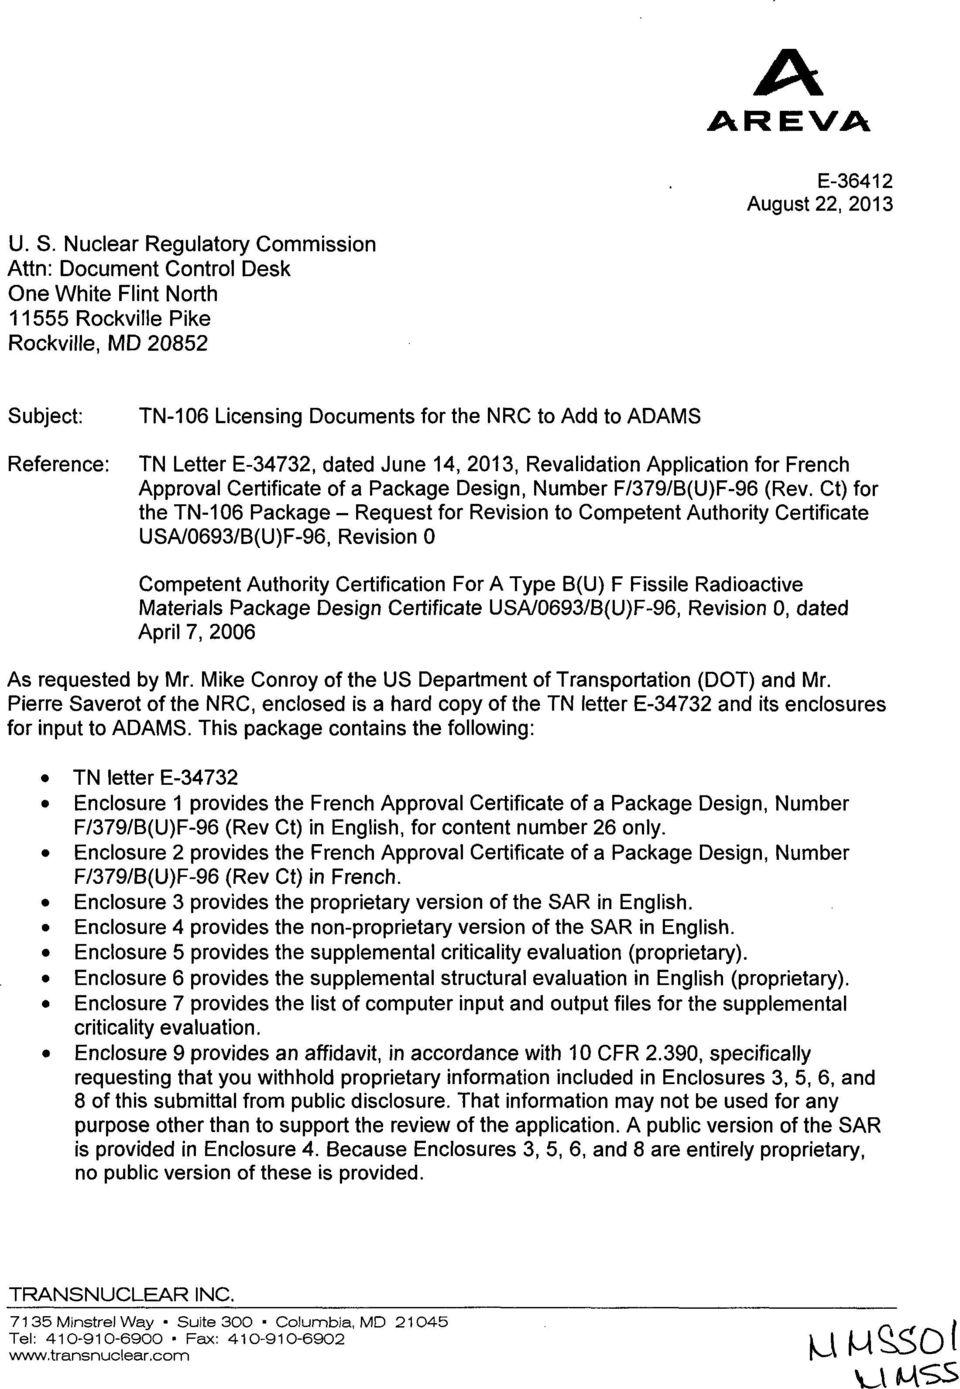 Letter E-34732, dated June 14, 2013, Revalidation Application for French Approval Certificate of a Package Design, Number F/379/B(U)F-96 (Rev.